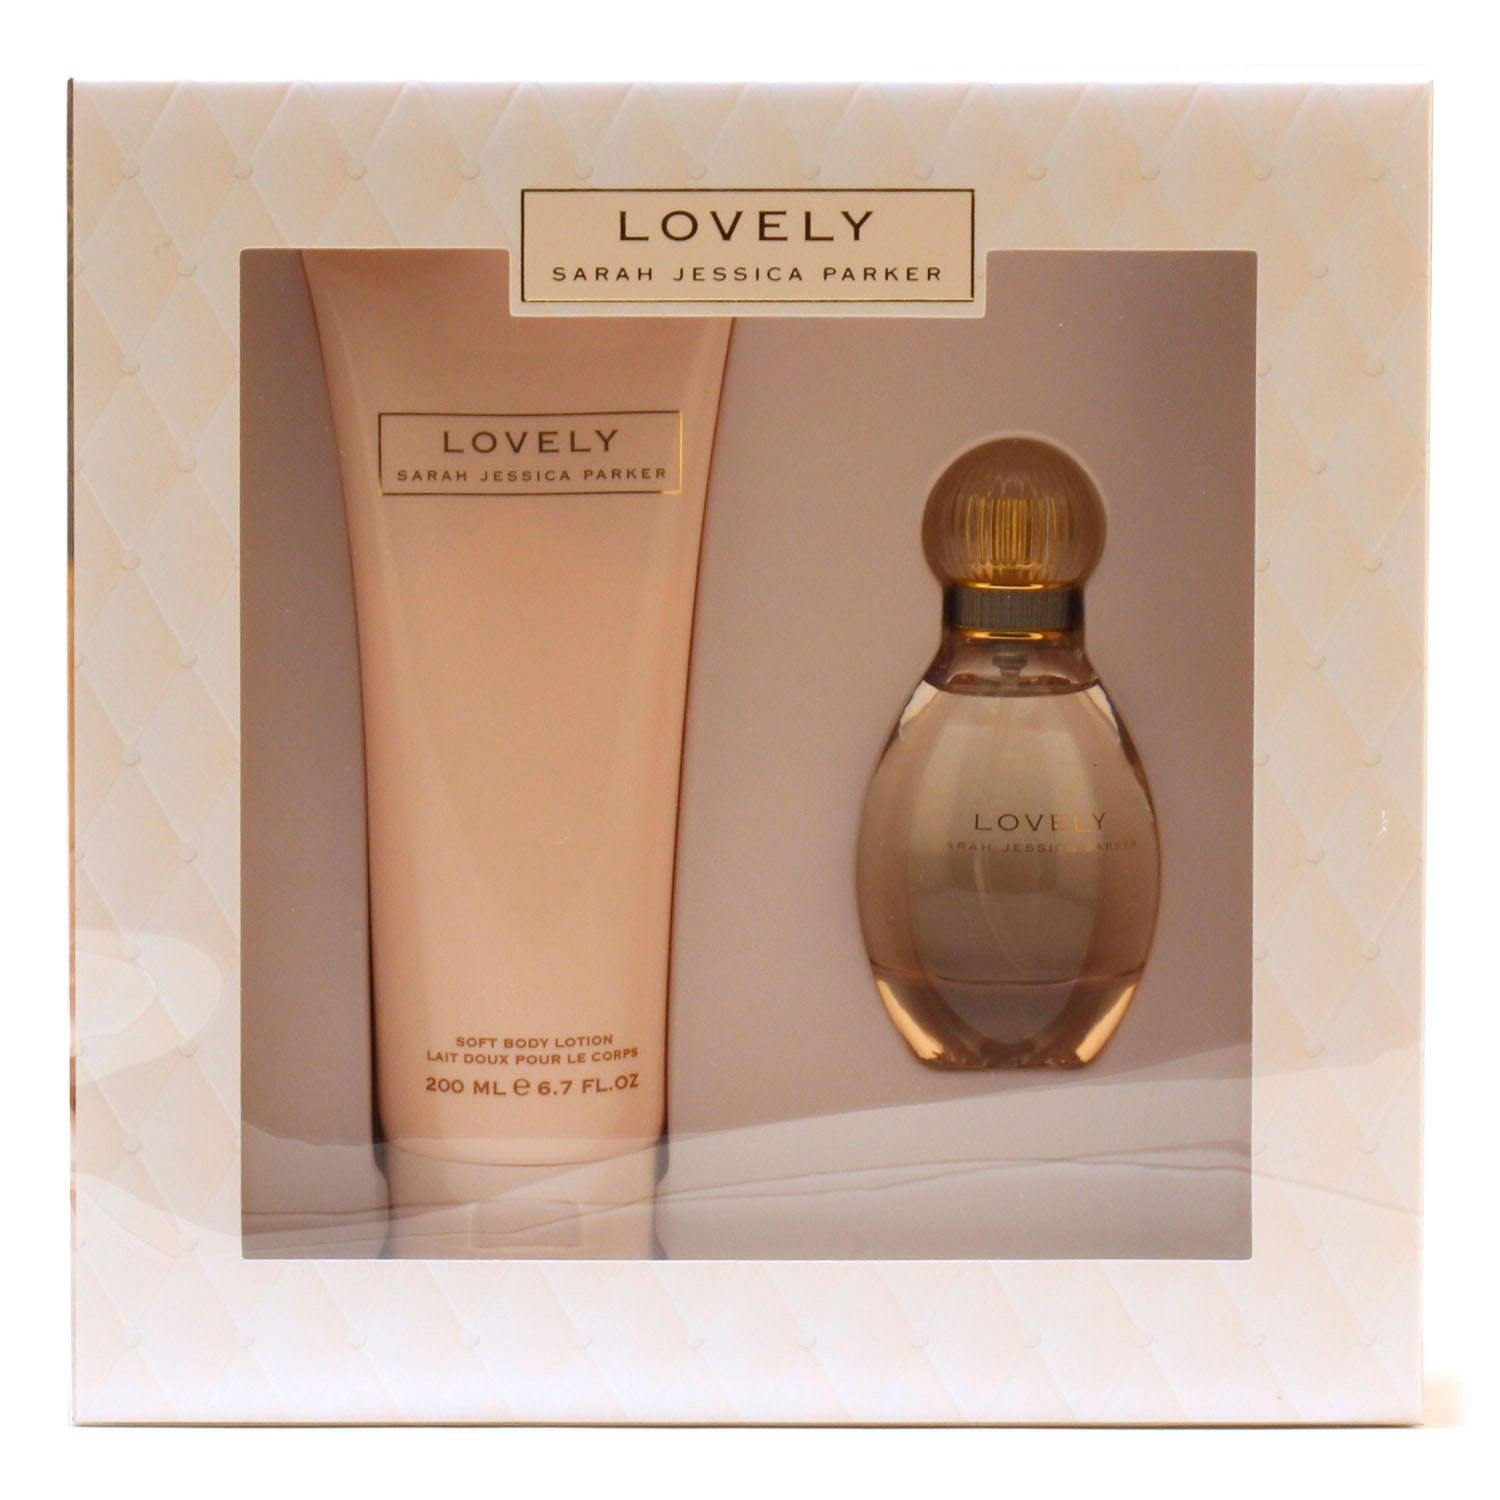 Perfume Sets - LOVELY FOR WOMEN BY SARAH JESSICA PARKER - PARFUM AND LOTION GIFT SET